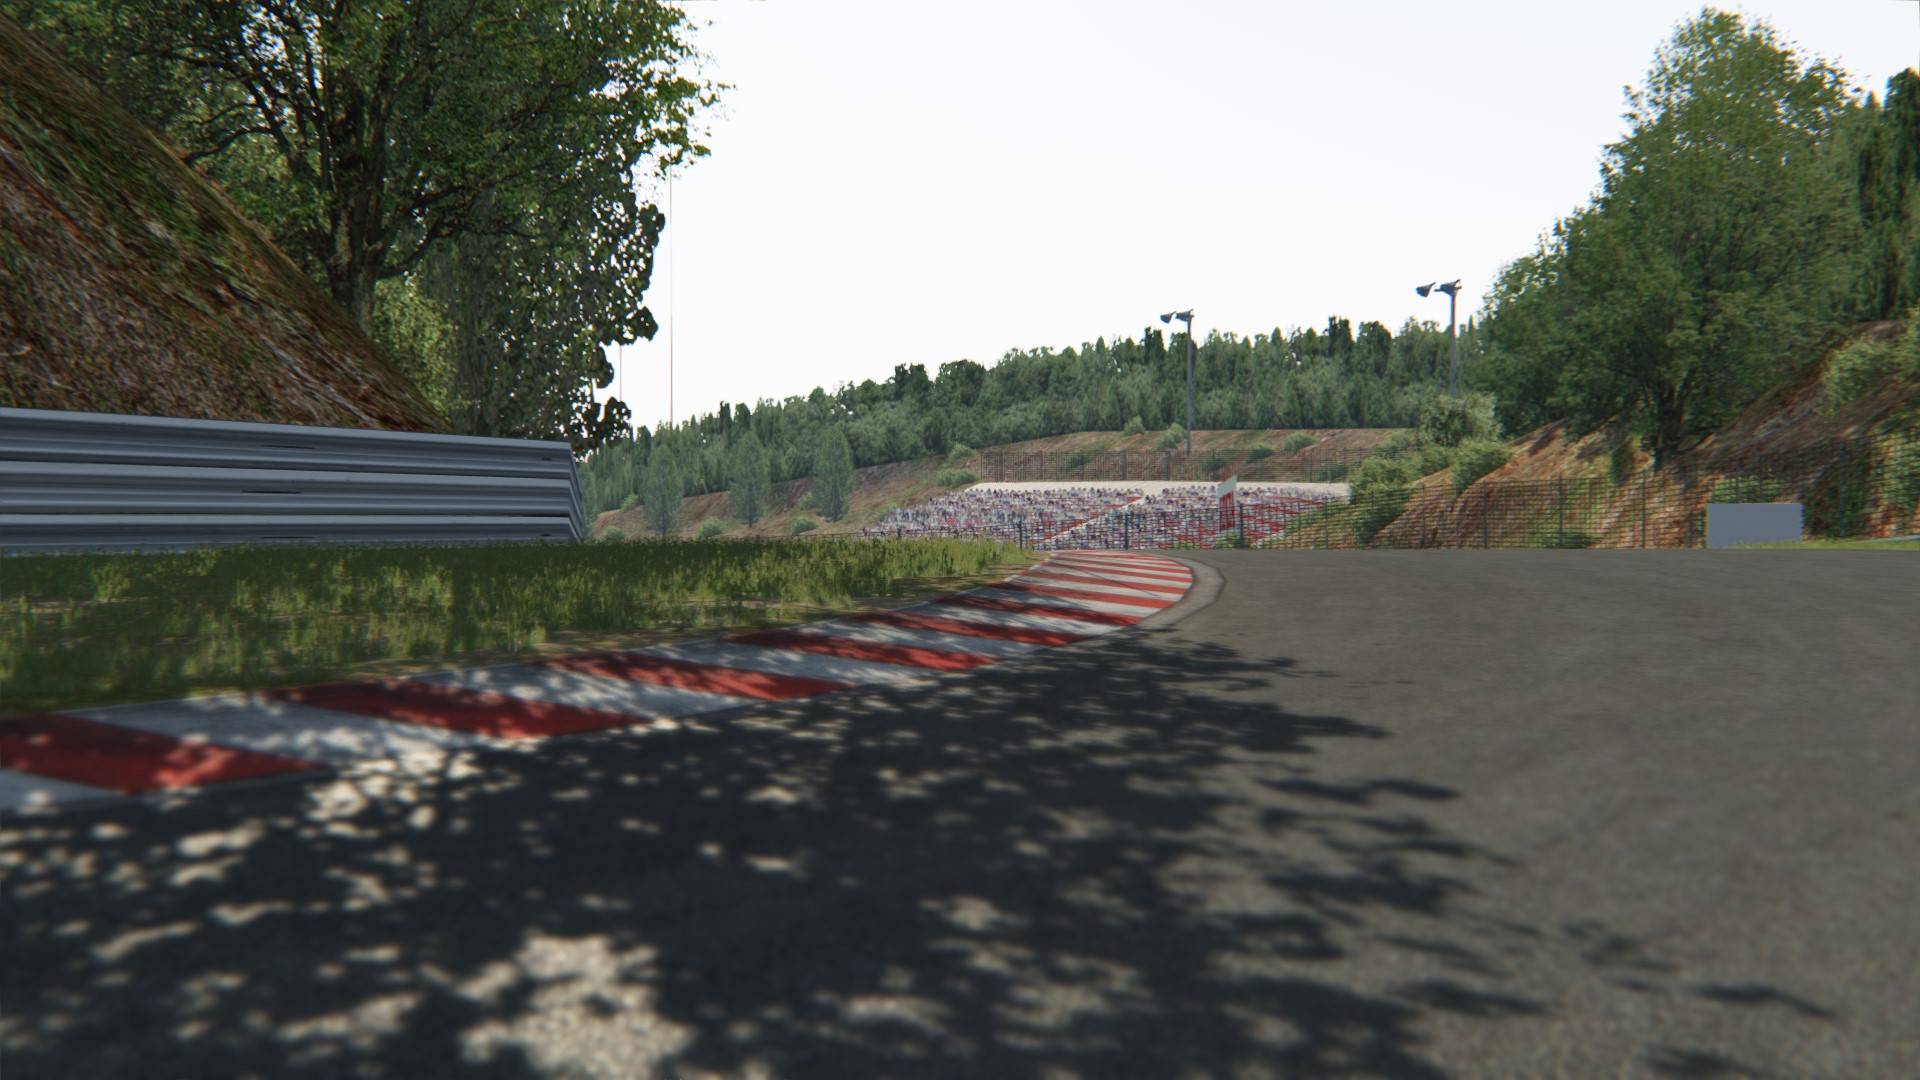 Screenshot_mclaren_mp412c_sportsland_sugo_31-3-116-11-48-21.jpg